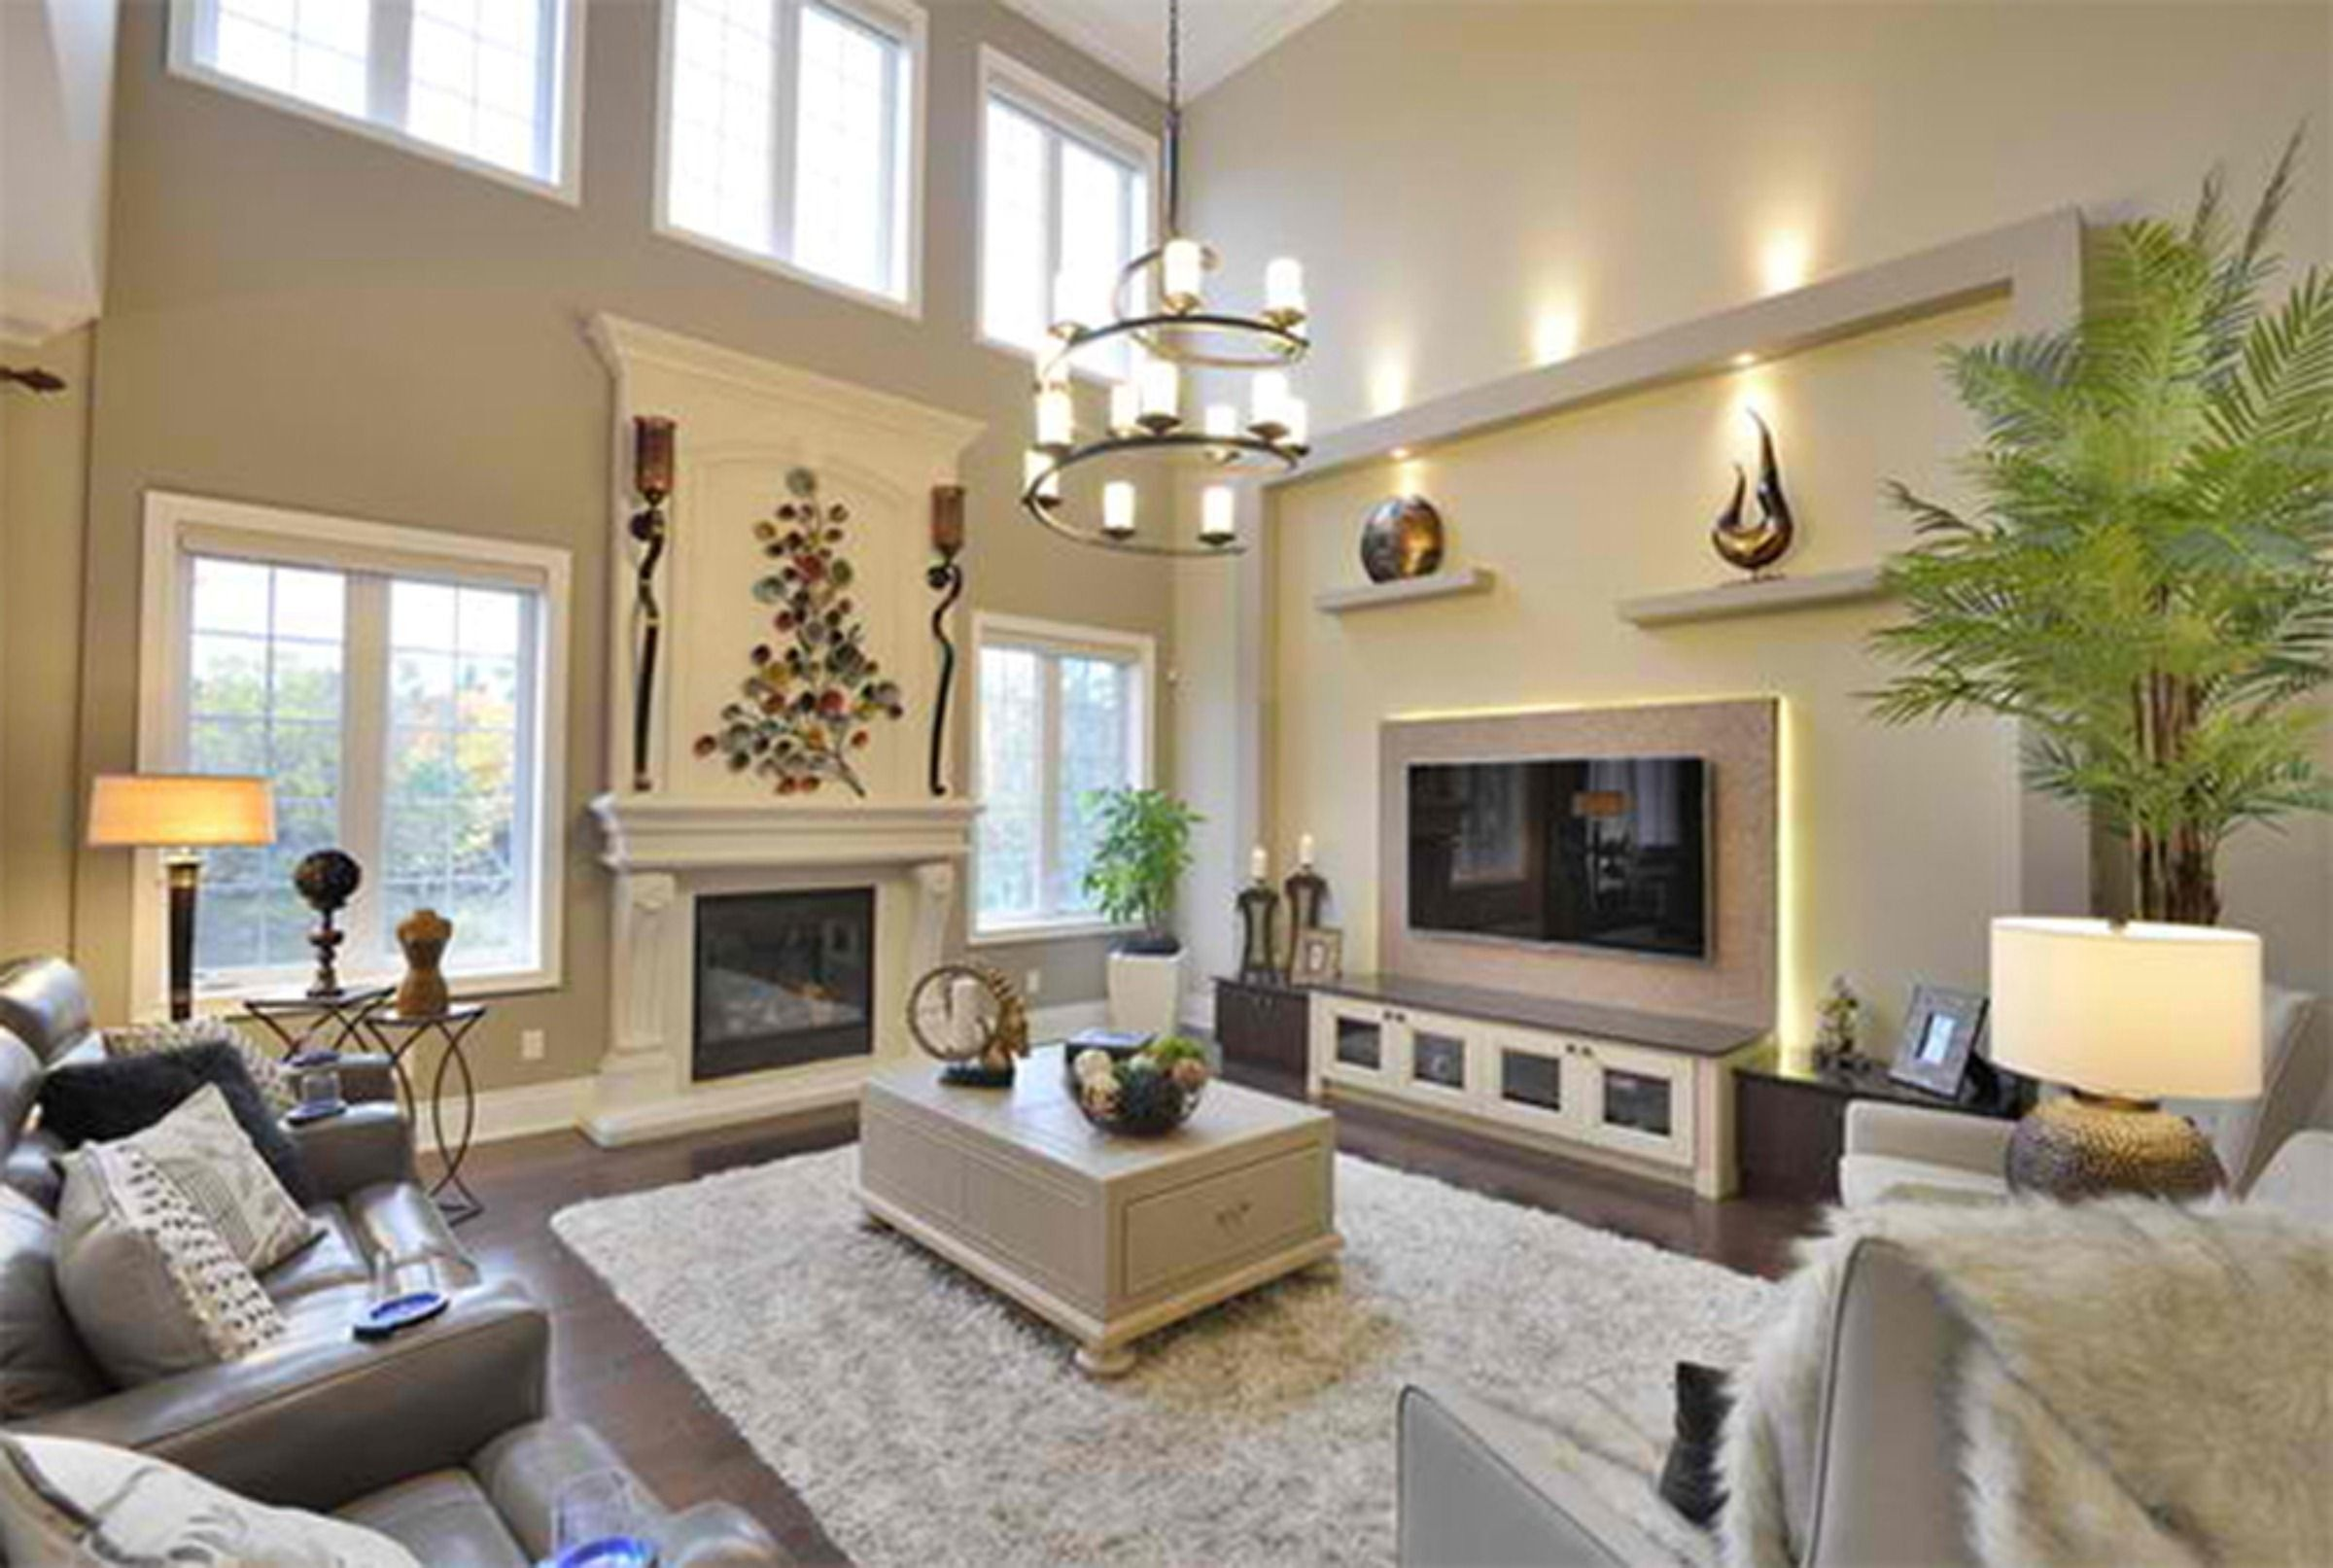 14+ High ceiling family room decorating ideas information